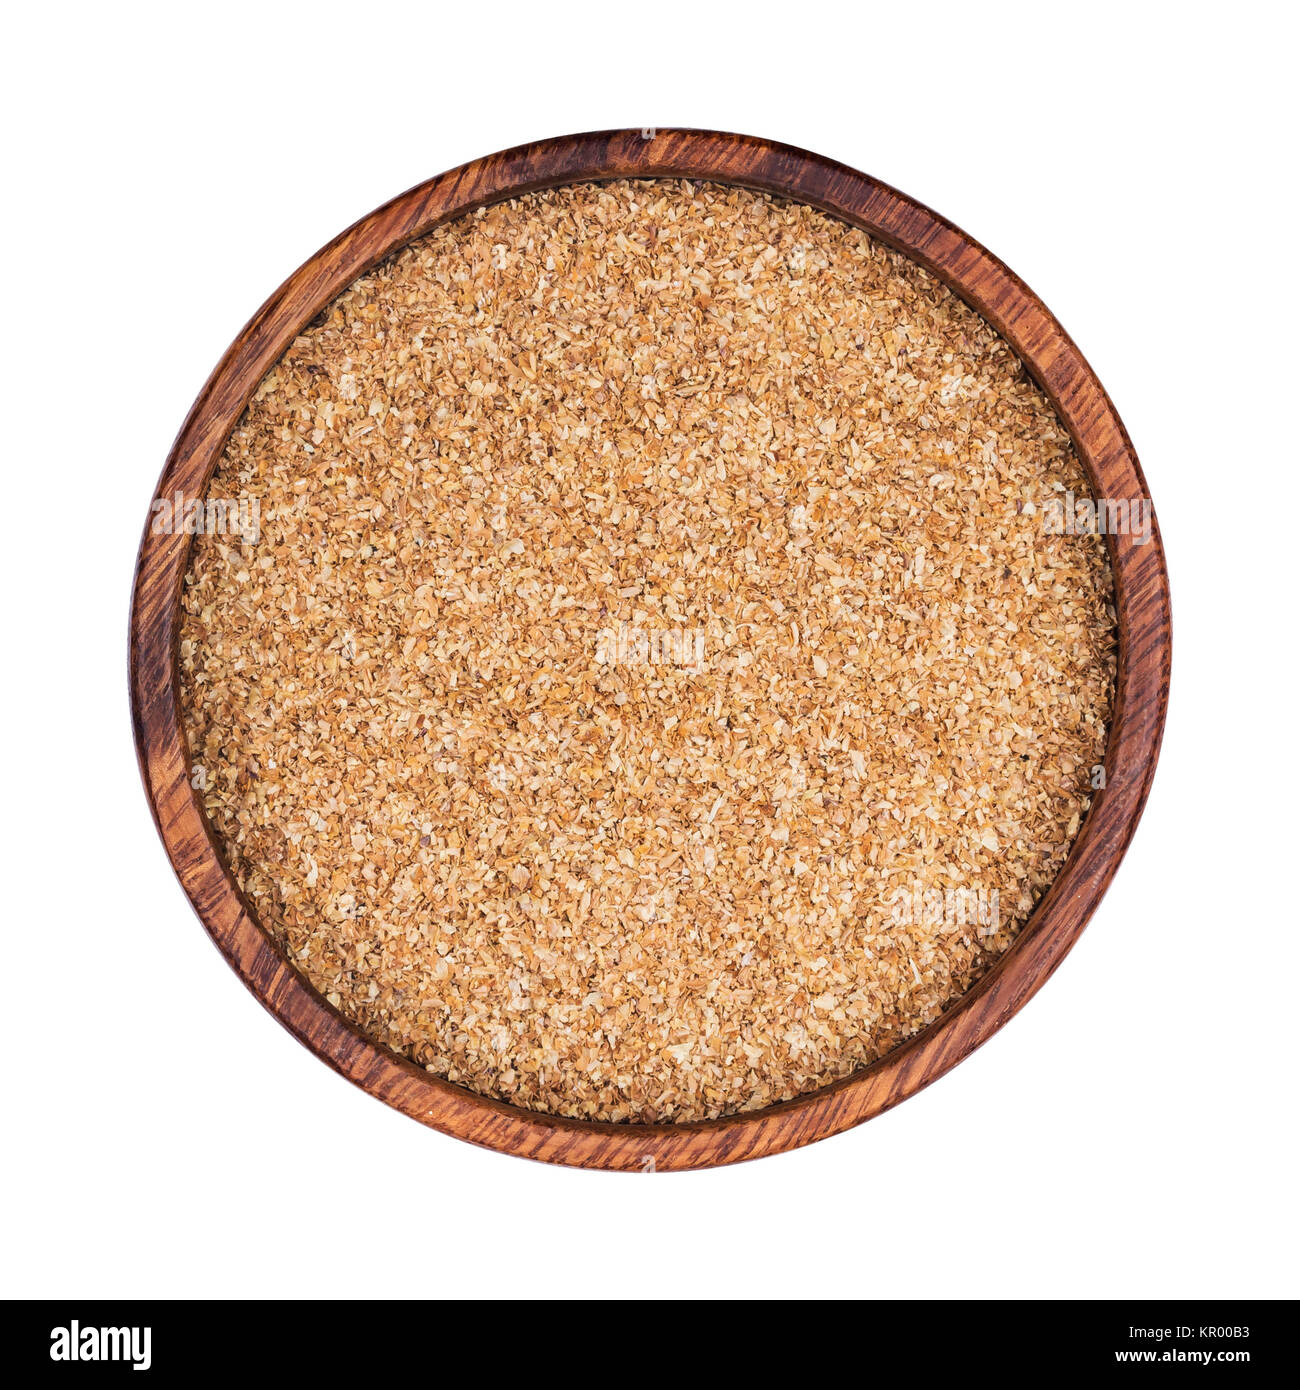 Dry ground fiber in bowl isolated on white background. Top view - Stock Image